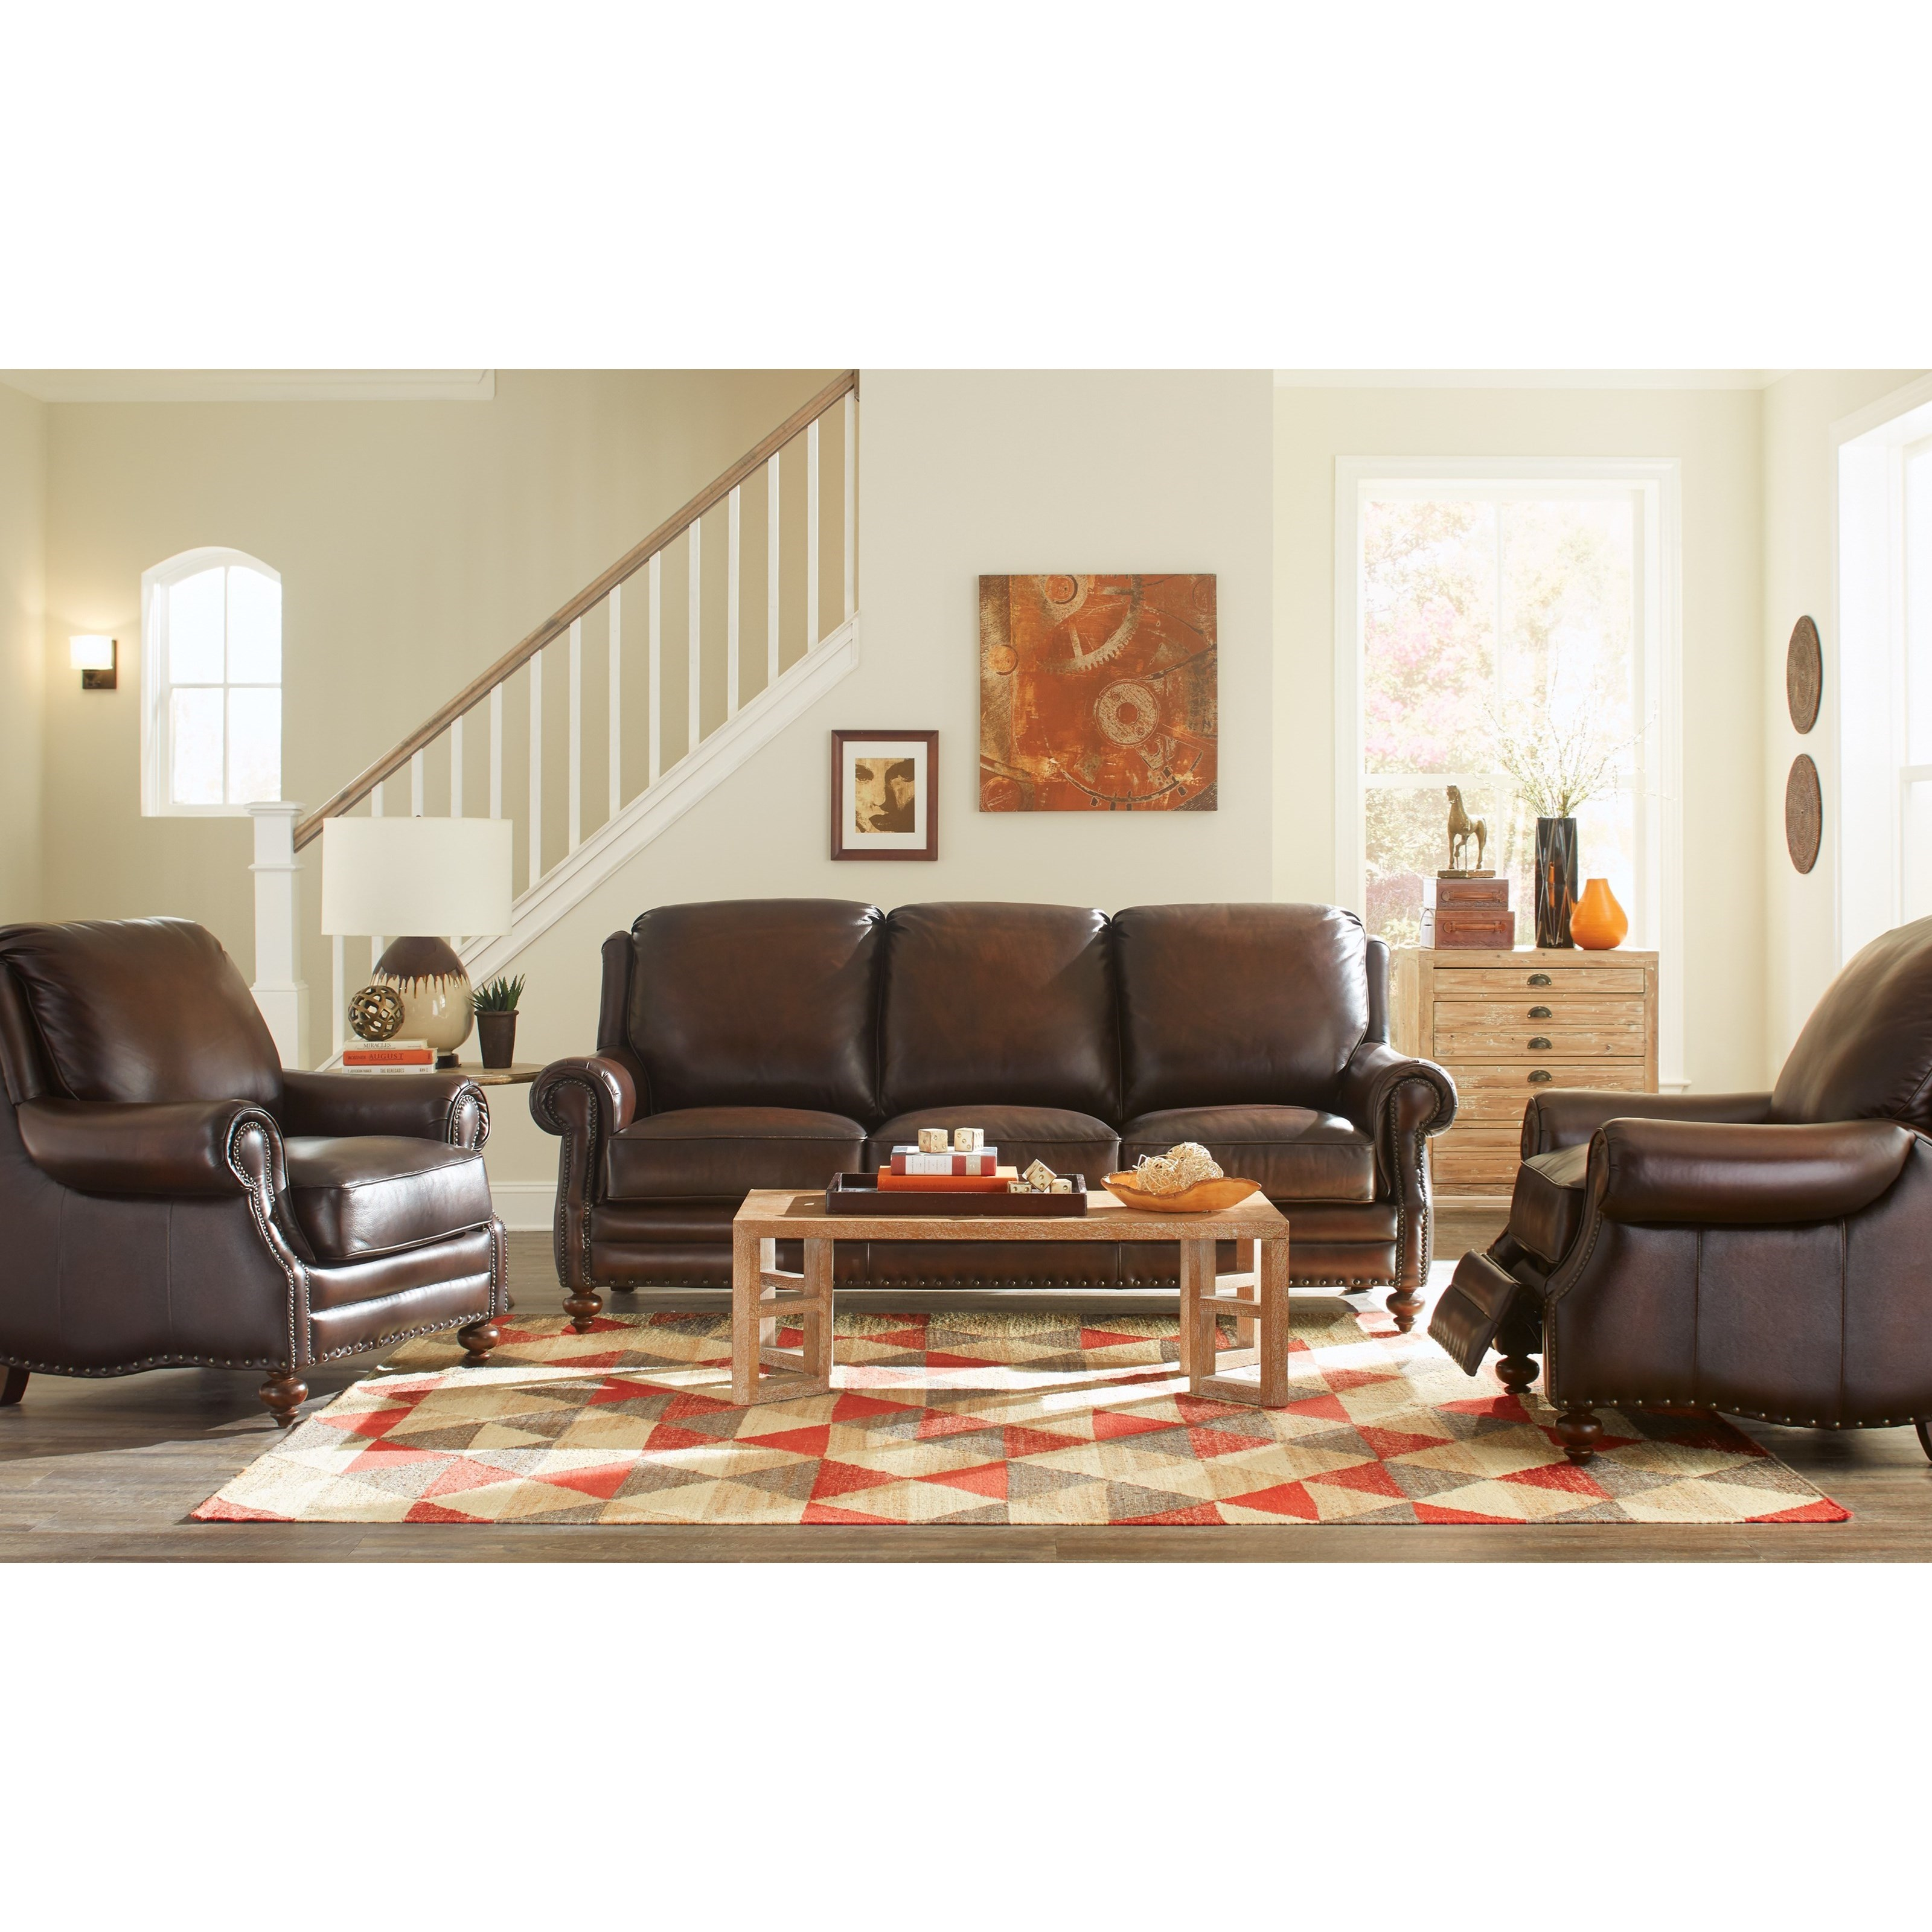 L171250 Craftmaster Leather Living Room Group by Craftmaster at Zak\'s Home